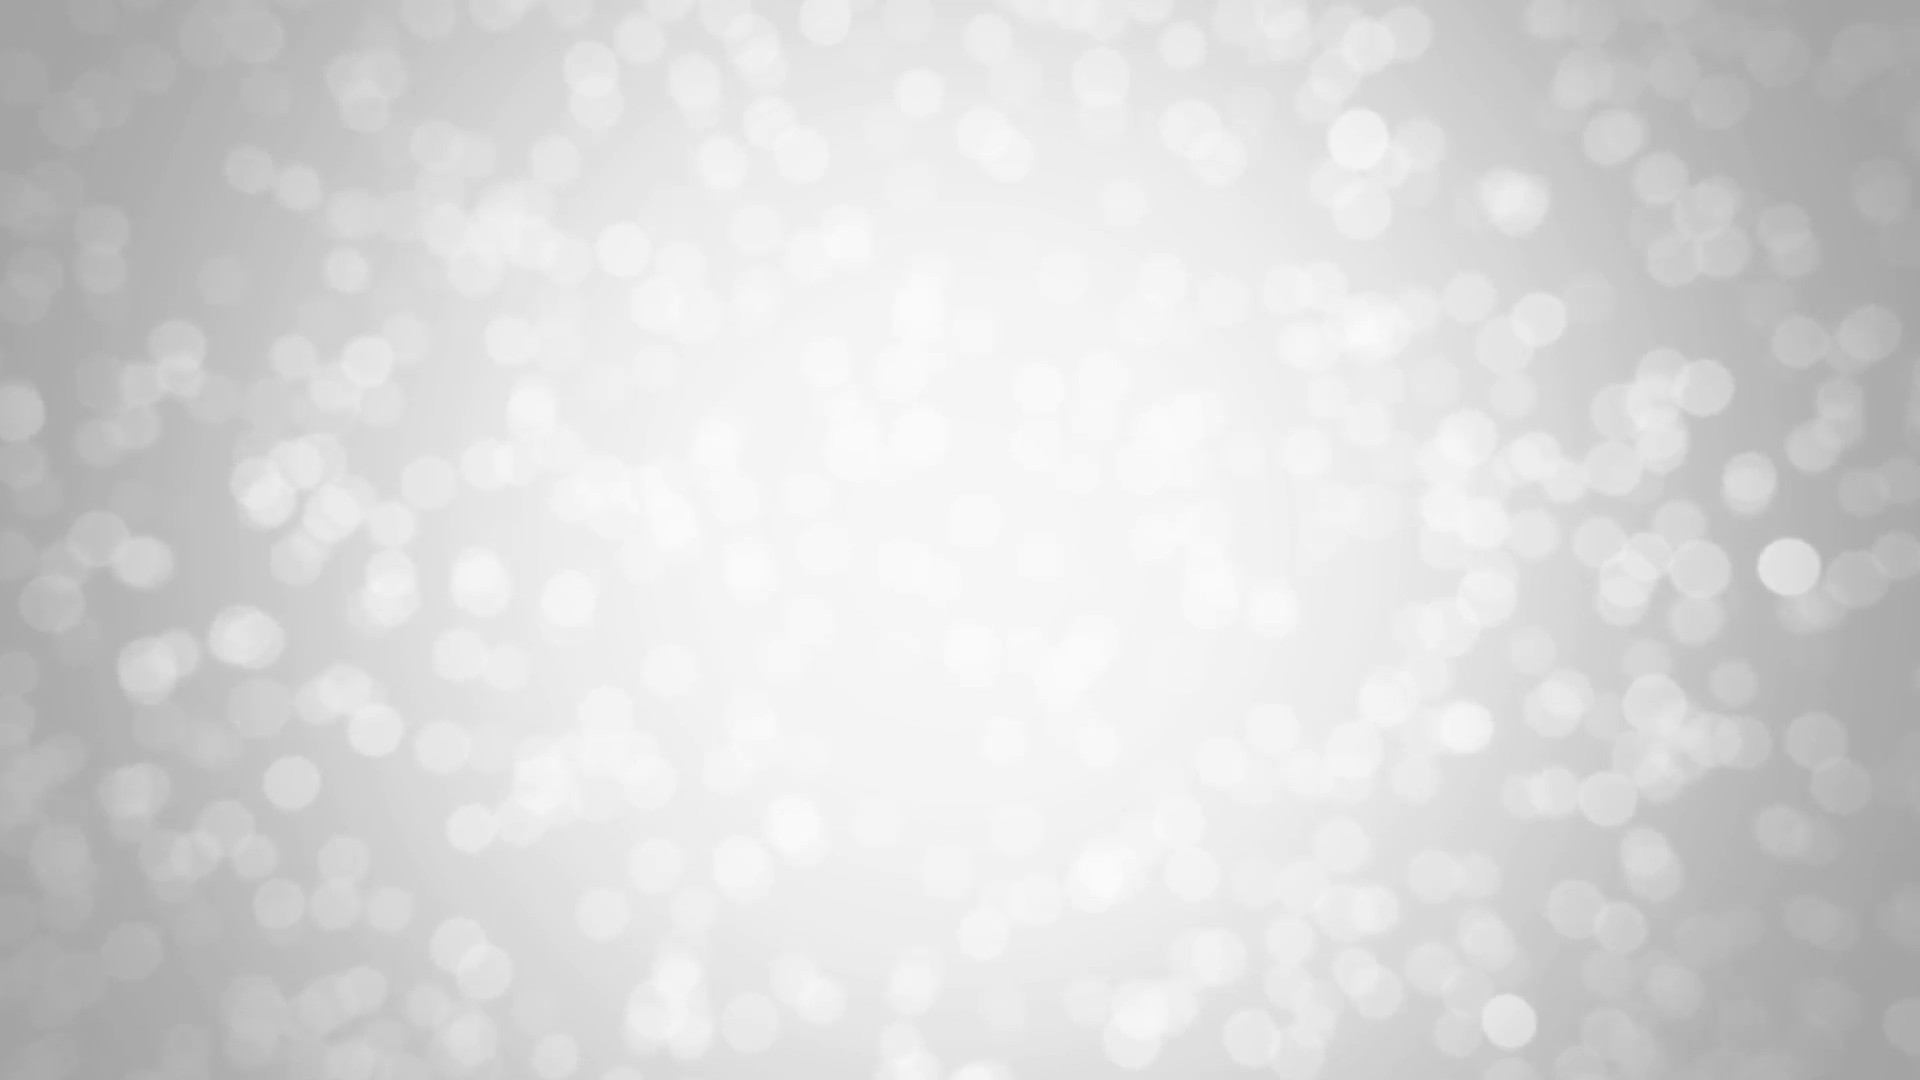 snow hd wallpaper for mobile